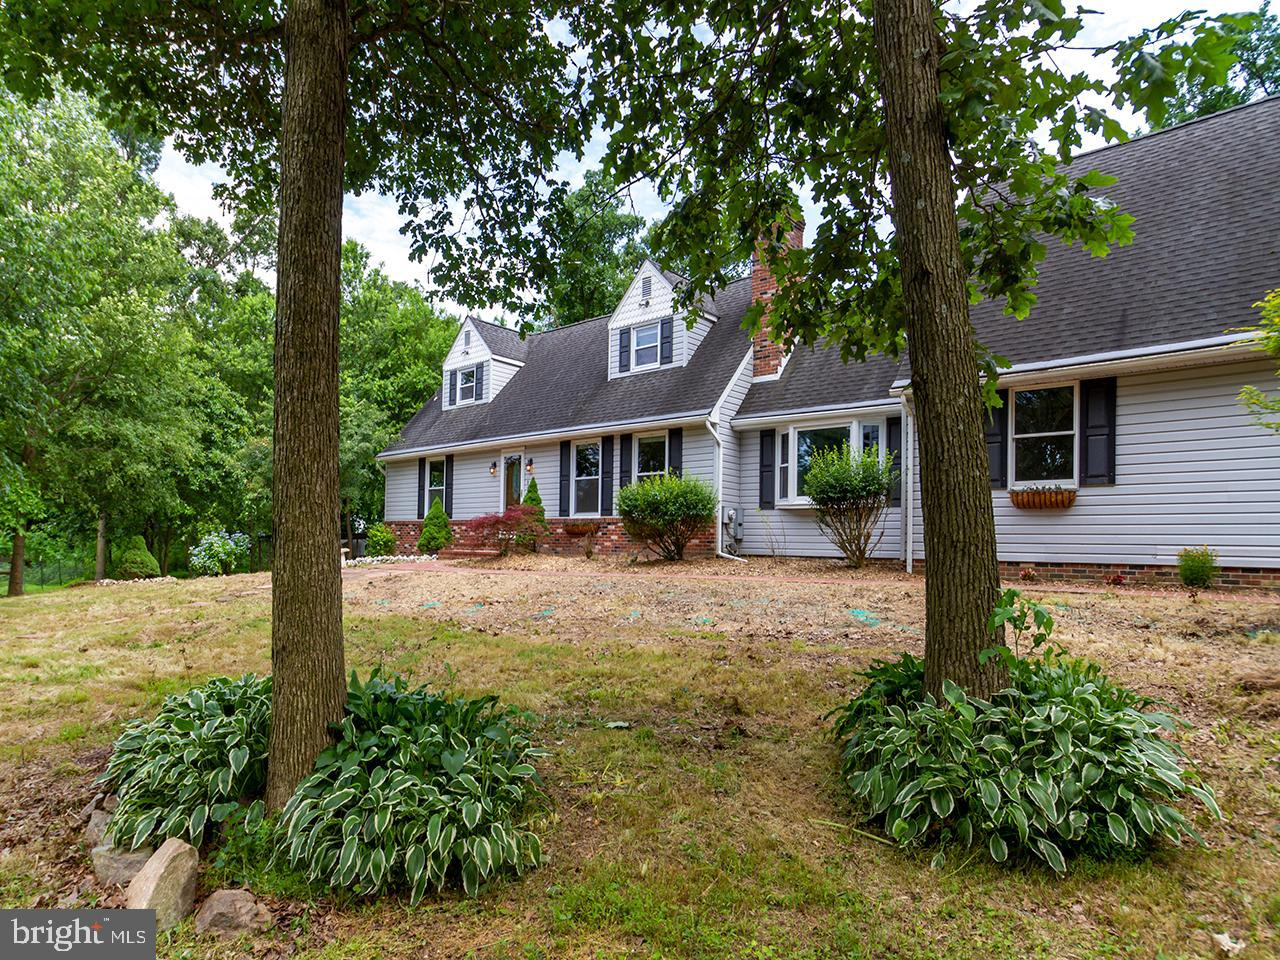 117 SAINT MARYS ROAD, PYLESVILLE, MD 21132